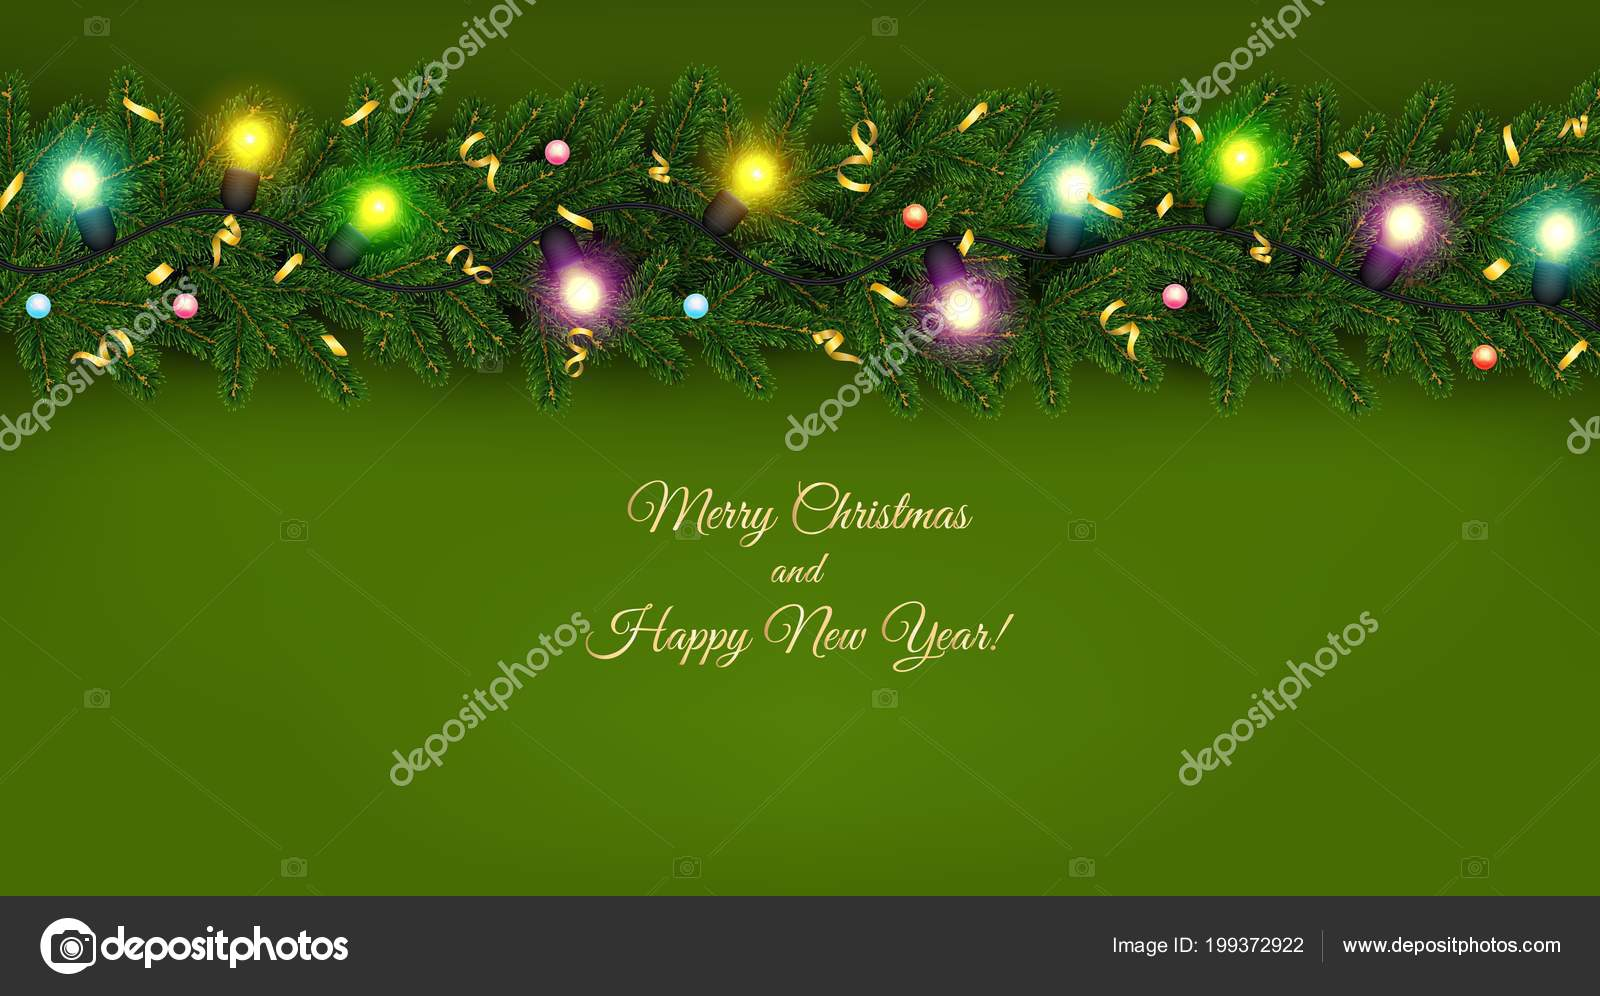 christmas and new year banner of realistic branches of christmas tree garland with glowing light bulbs serpentine festive background vector illustration